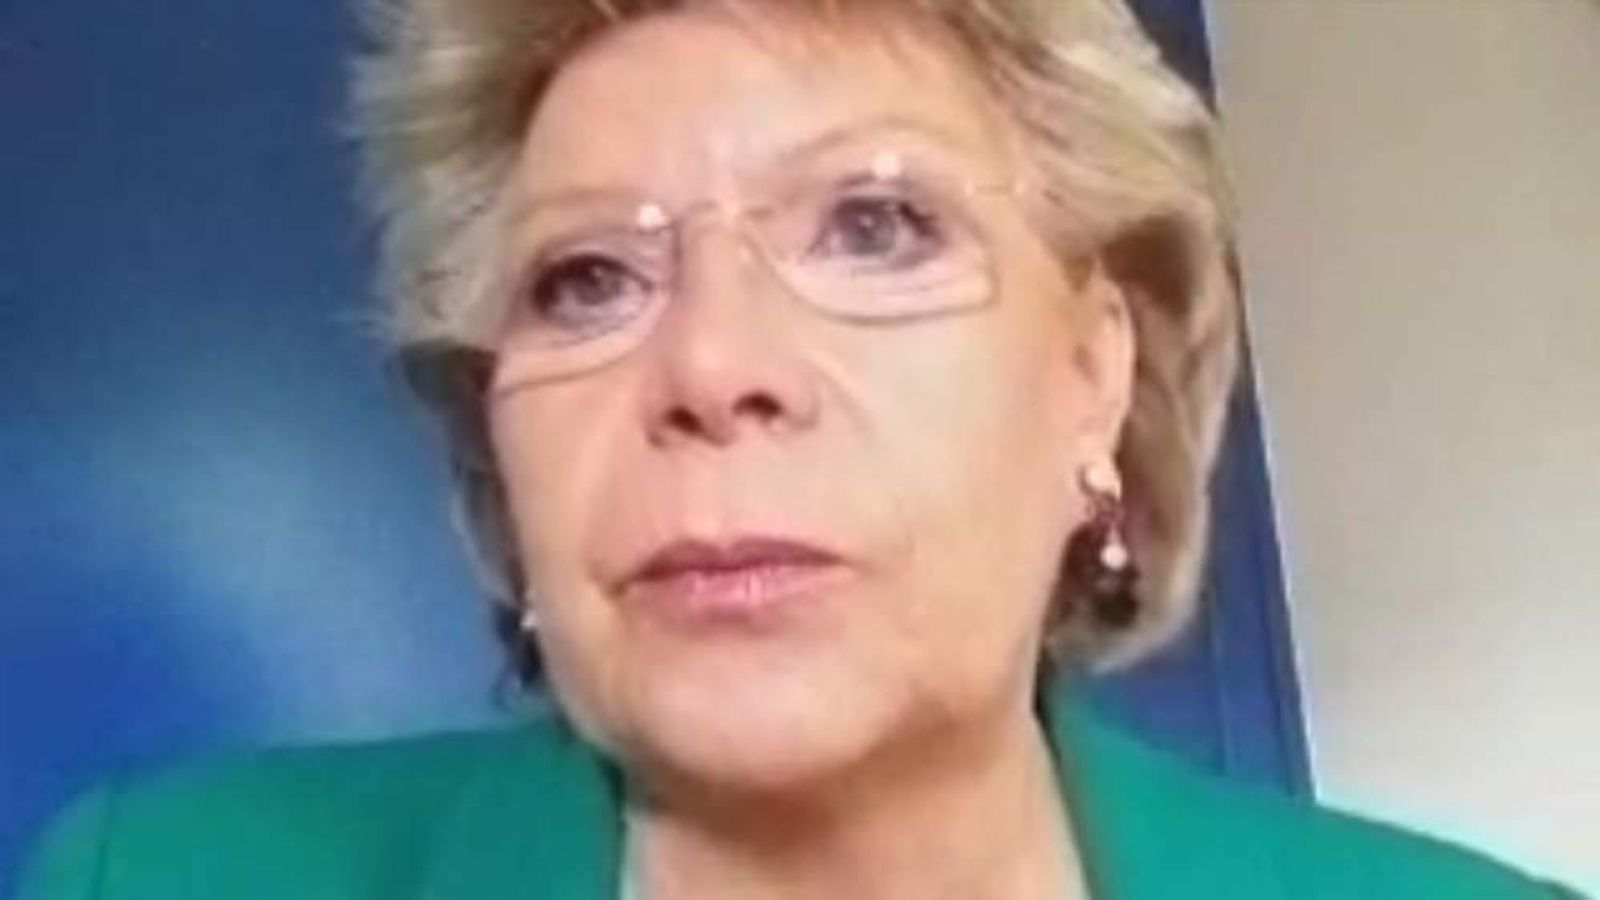 European Commissioner and Luxembourgian Viviane Reding